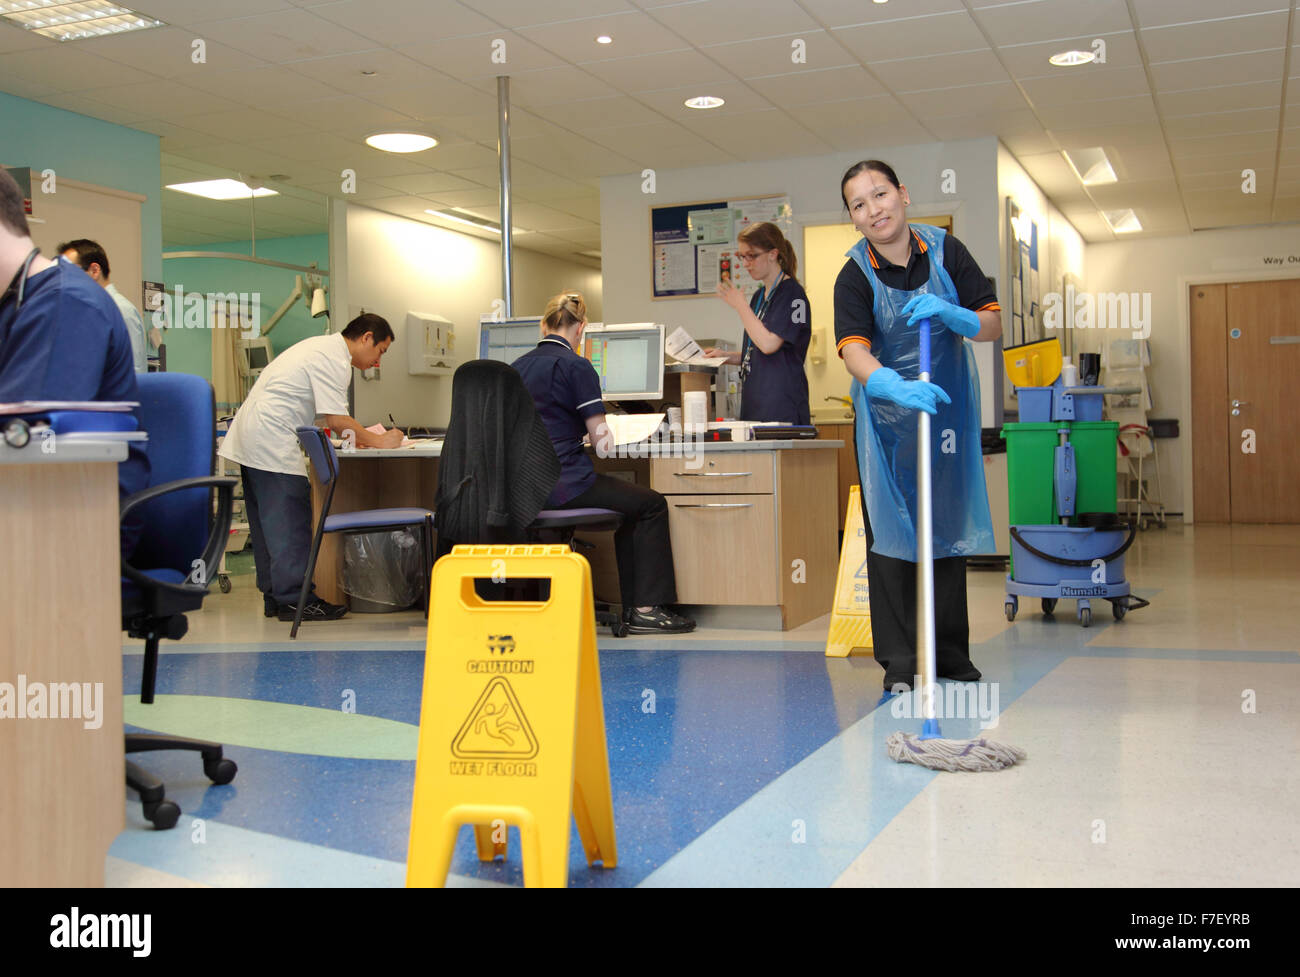 A hospital cleaner mops the floor in the ward administration area in a modern UK hospital. Wet floor sign in the - Stock Image